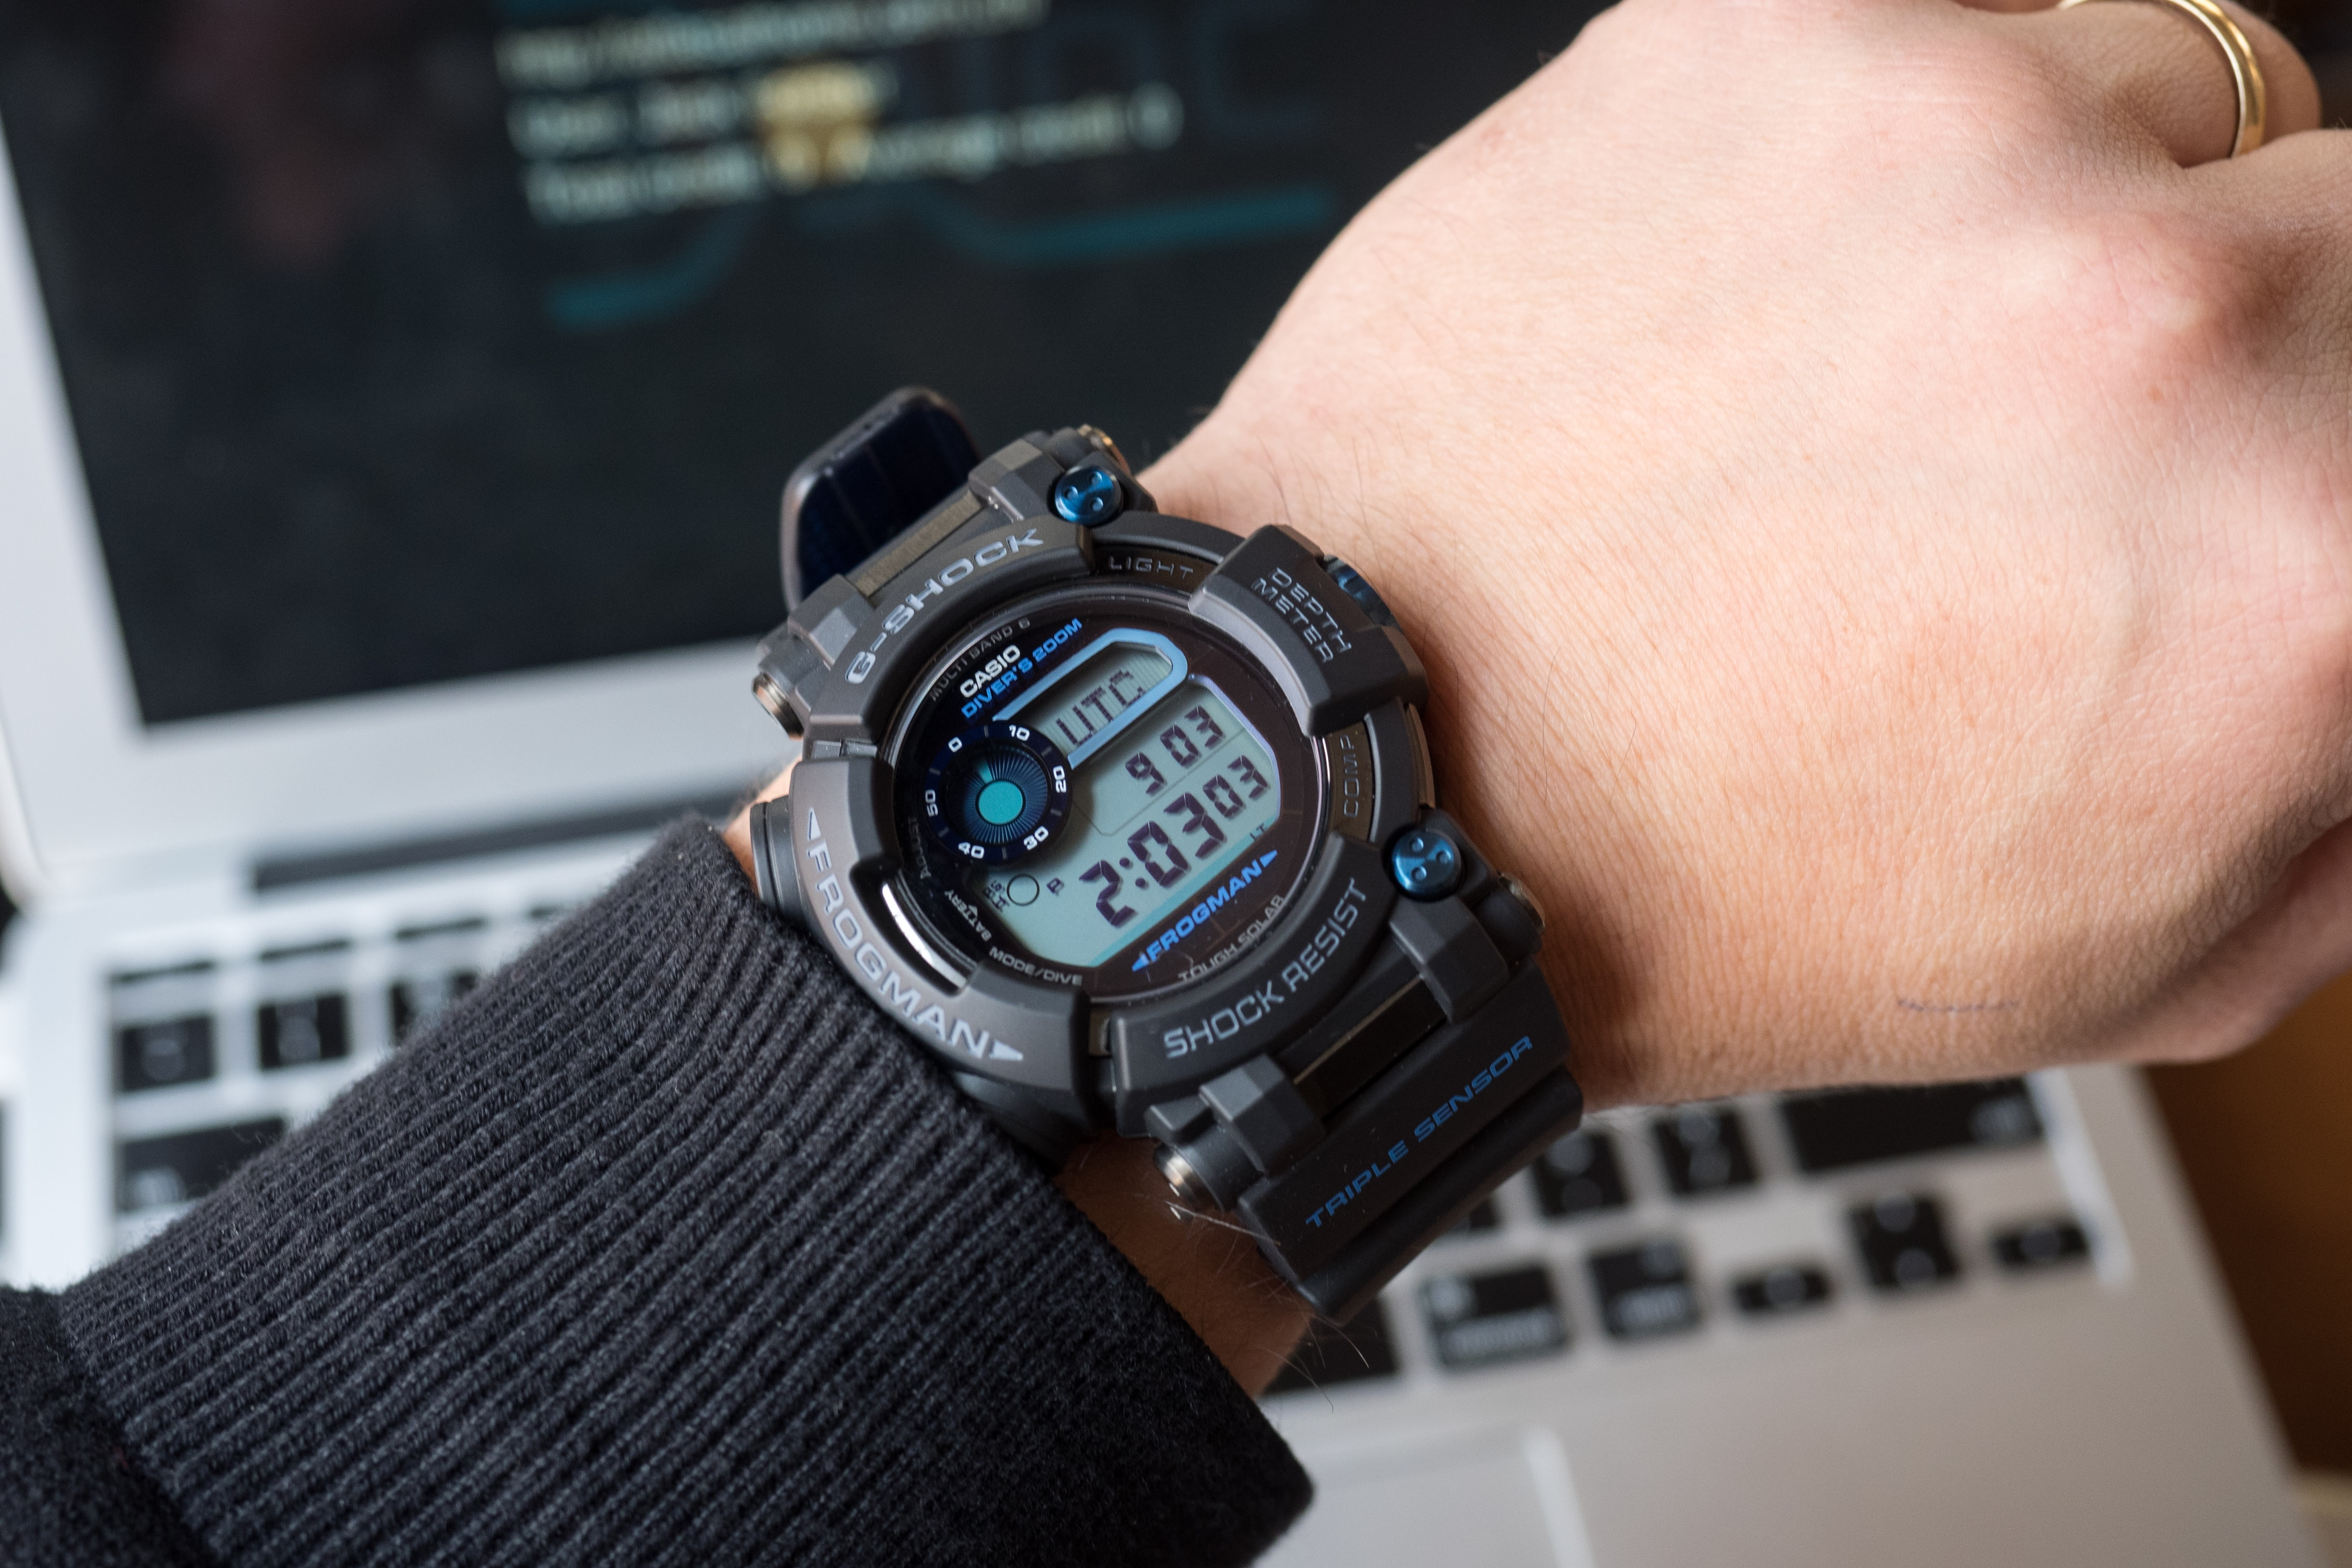 G-Shock Frogman GWF-D1000B wrist shot A Week On The Wrist: The Casio 'Master Of G' G-Shock Frogman GWF-D1000B, A Great Watch To Wear For Punching A T. Rex A Week On The Wrist: The Casio 'Master Of G' G-Shock Frogman GWF-D1000B, A Great Watch To Wear For Punching A T. Rex P1091545